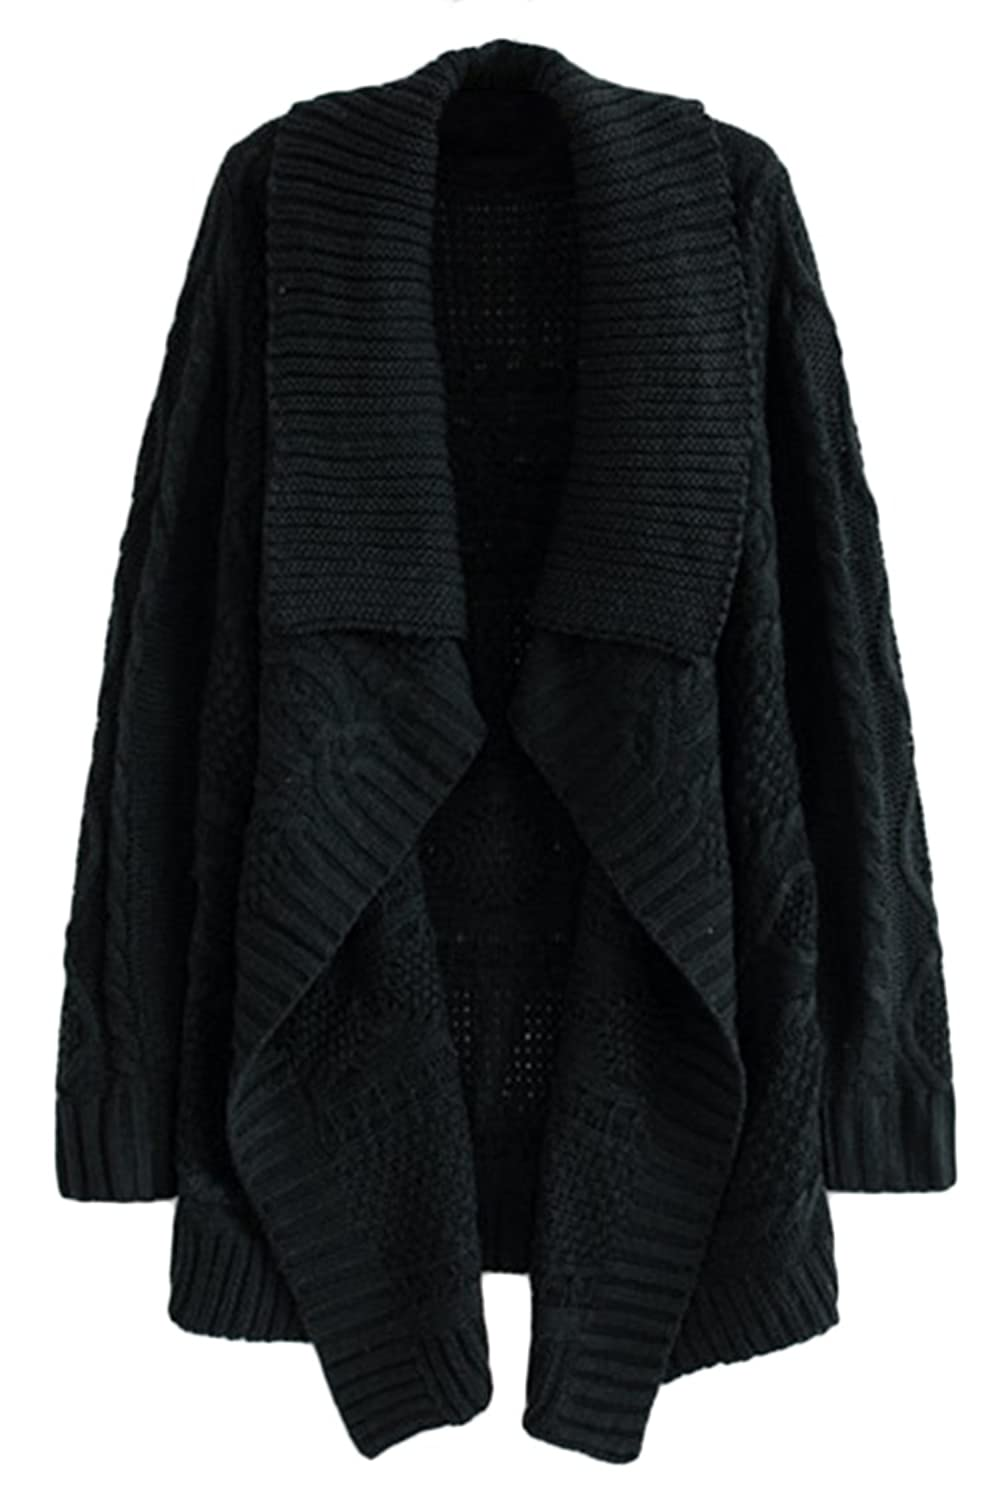 Pink Queen Women Cable Knit Open Front Kimono Cardigans Sweaters